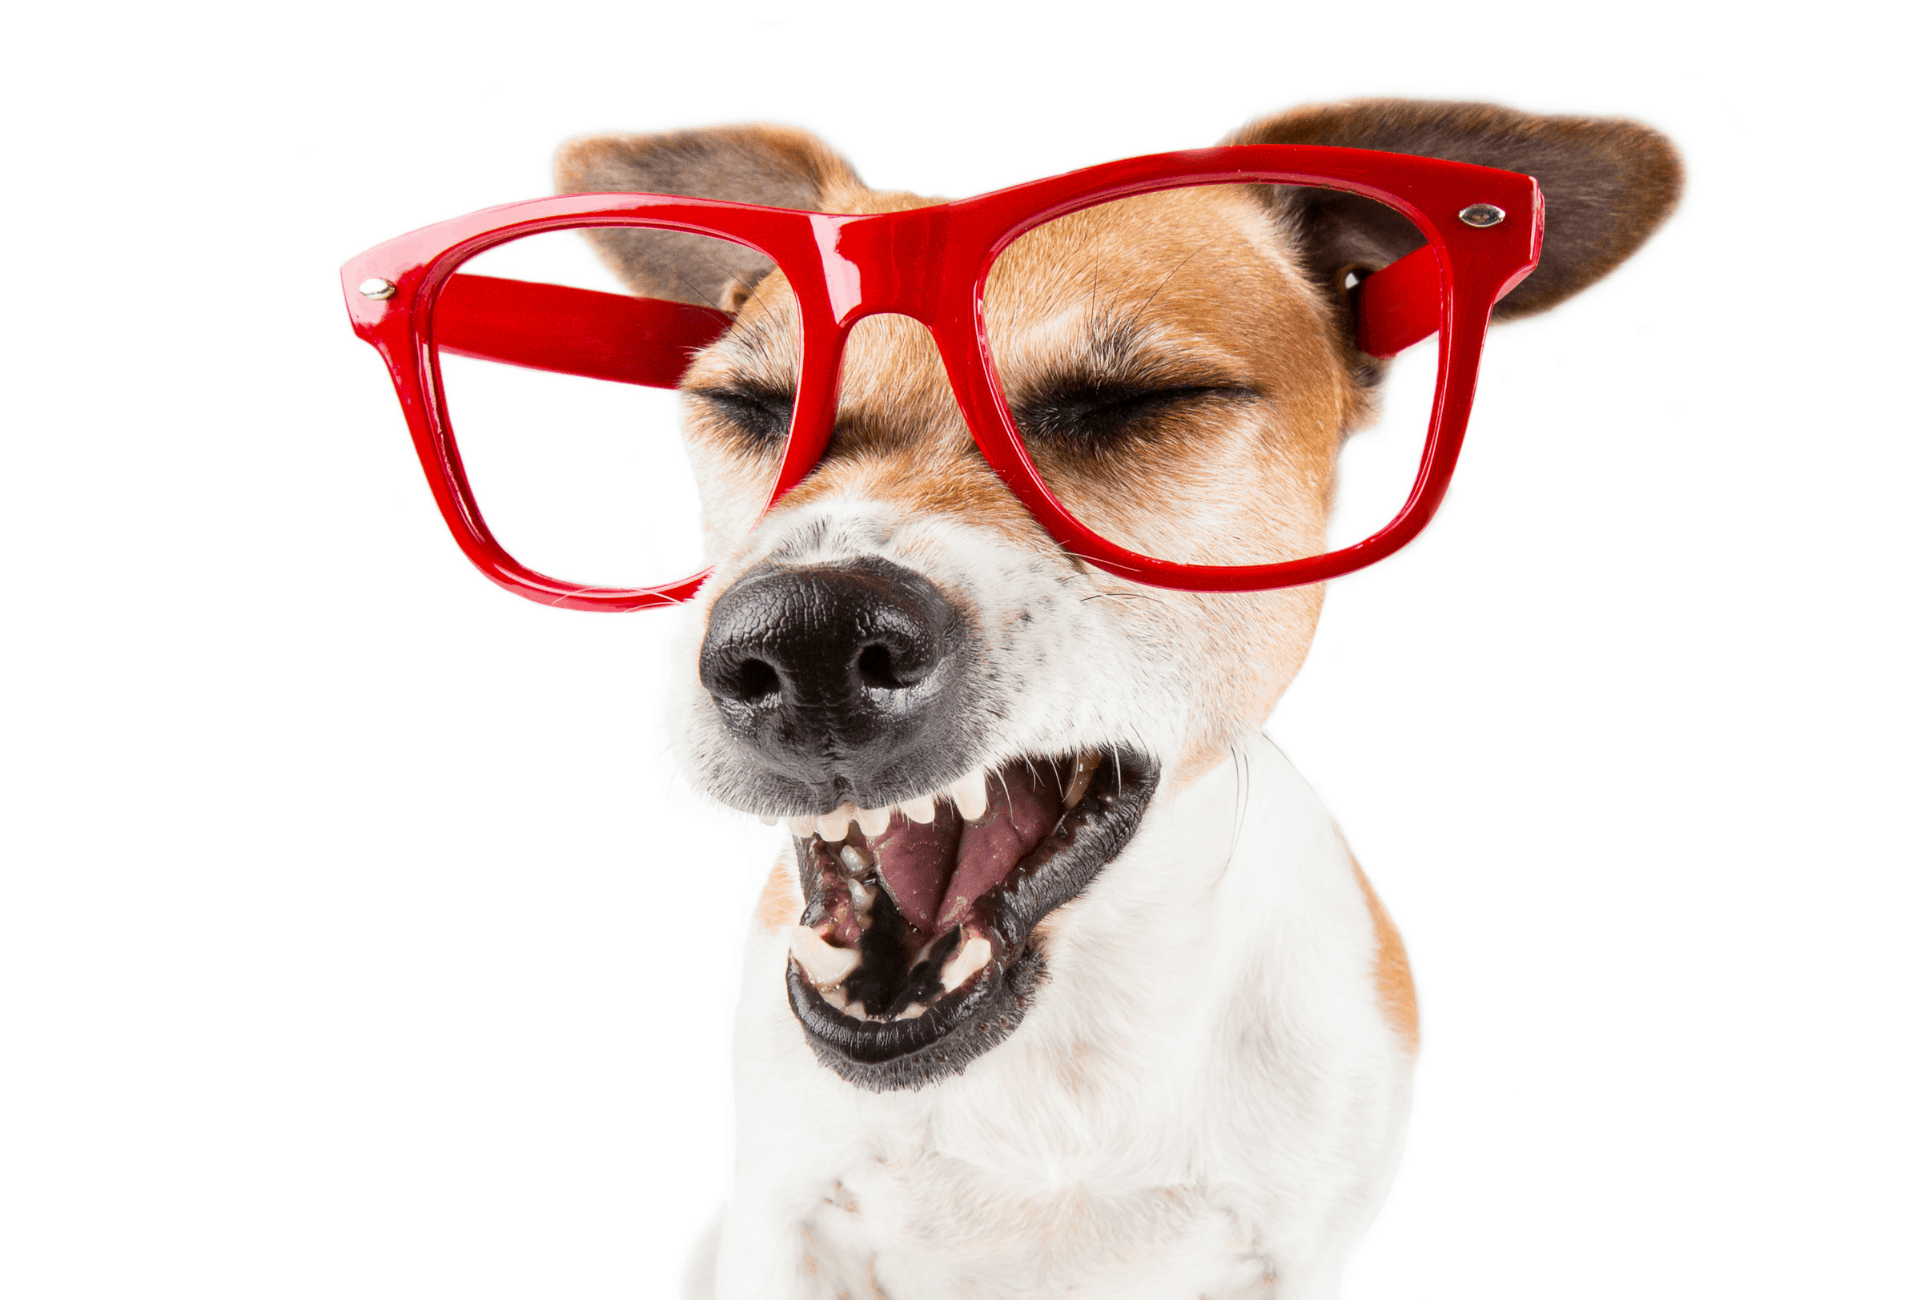 Dog sneezes and wears red glasses